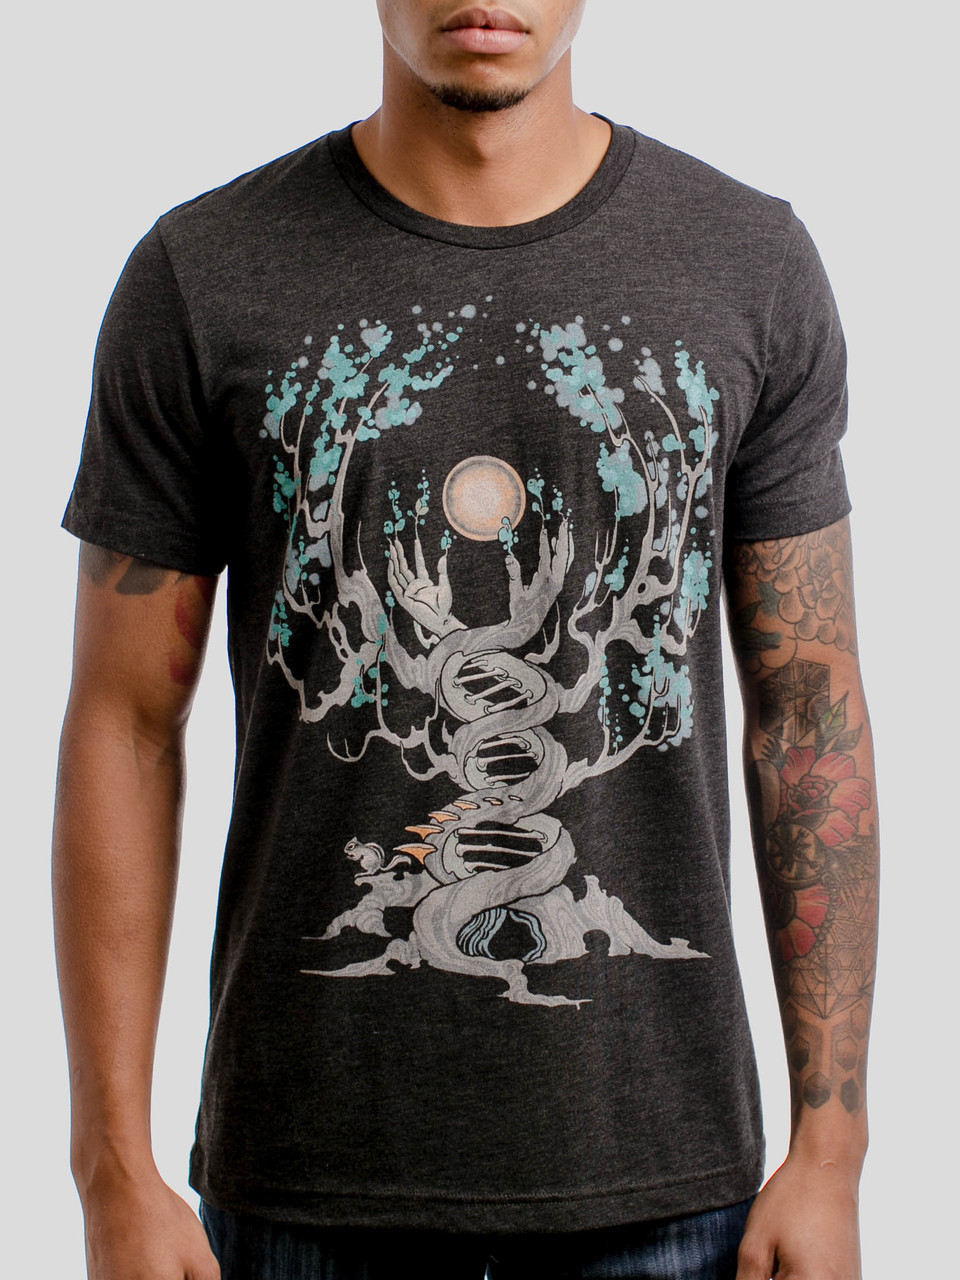 c59cf5e1a Emergence - Multicolor on Heather Black Triblend Mens T Shirt - Curbside  Clothing